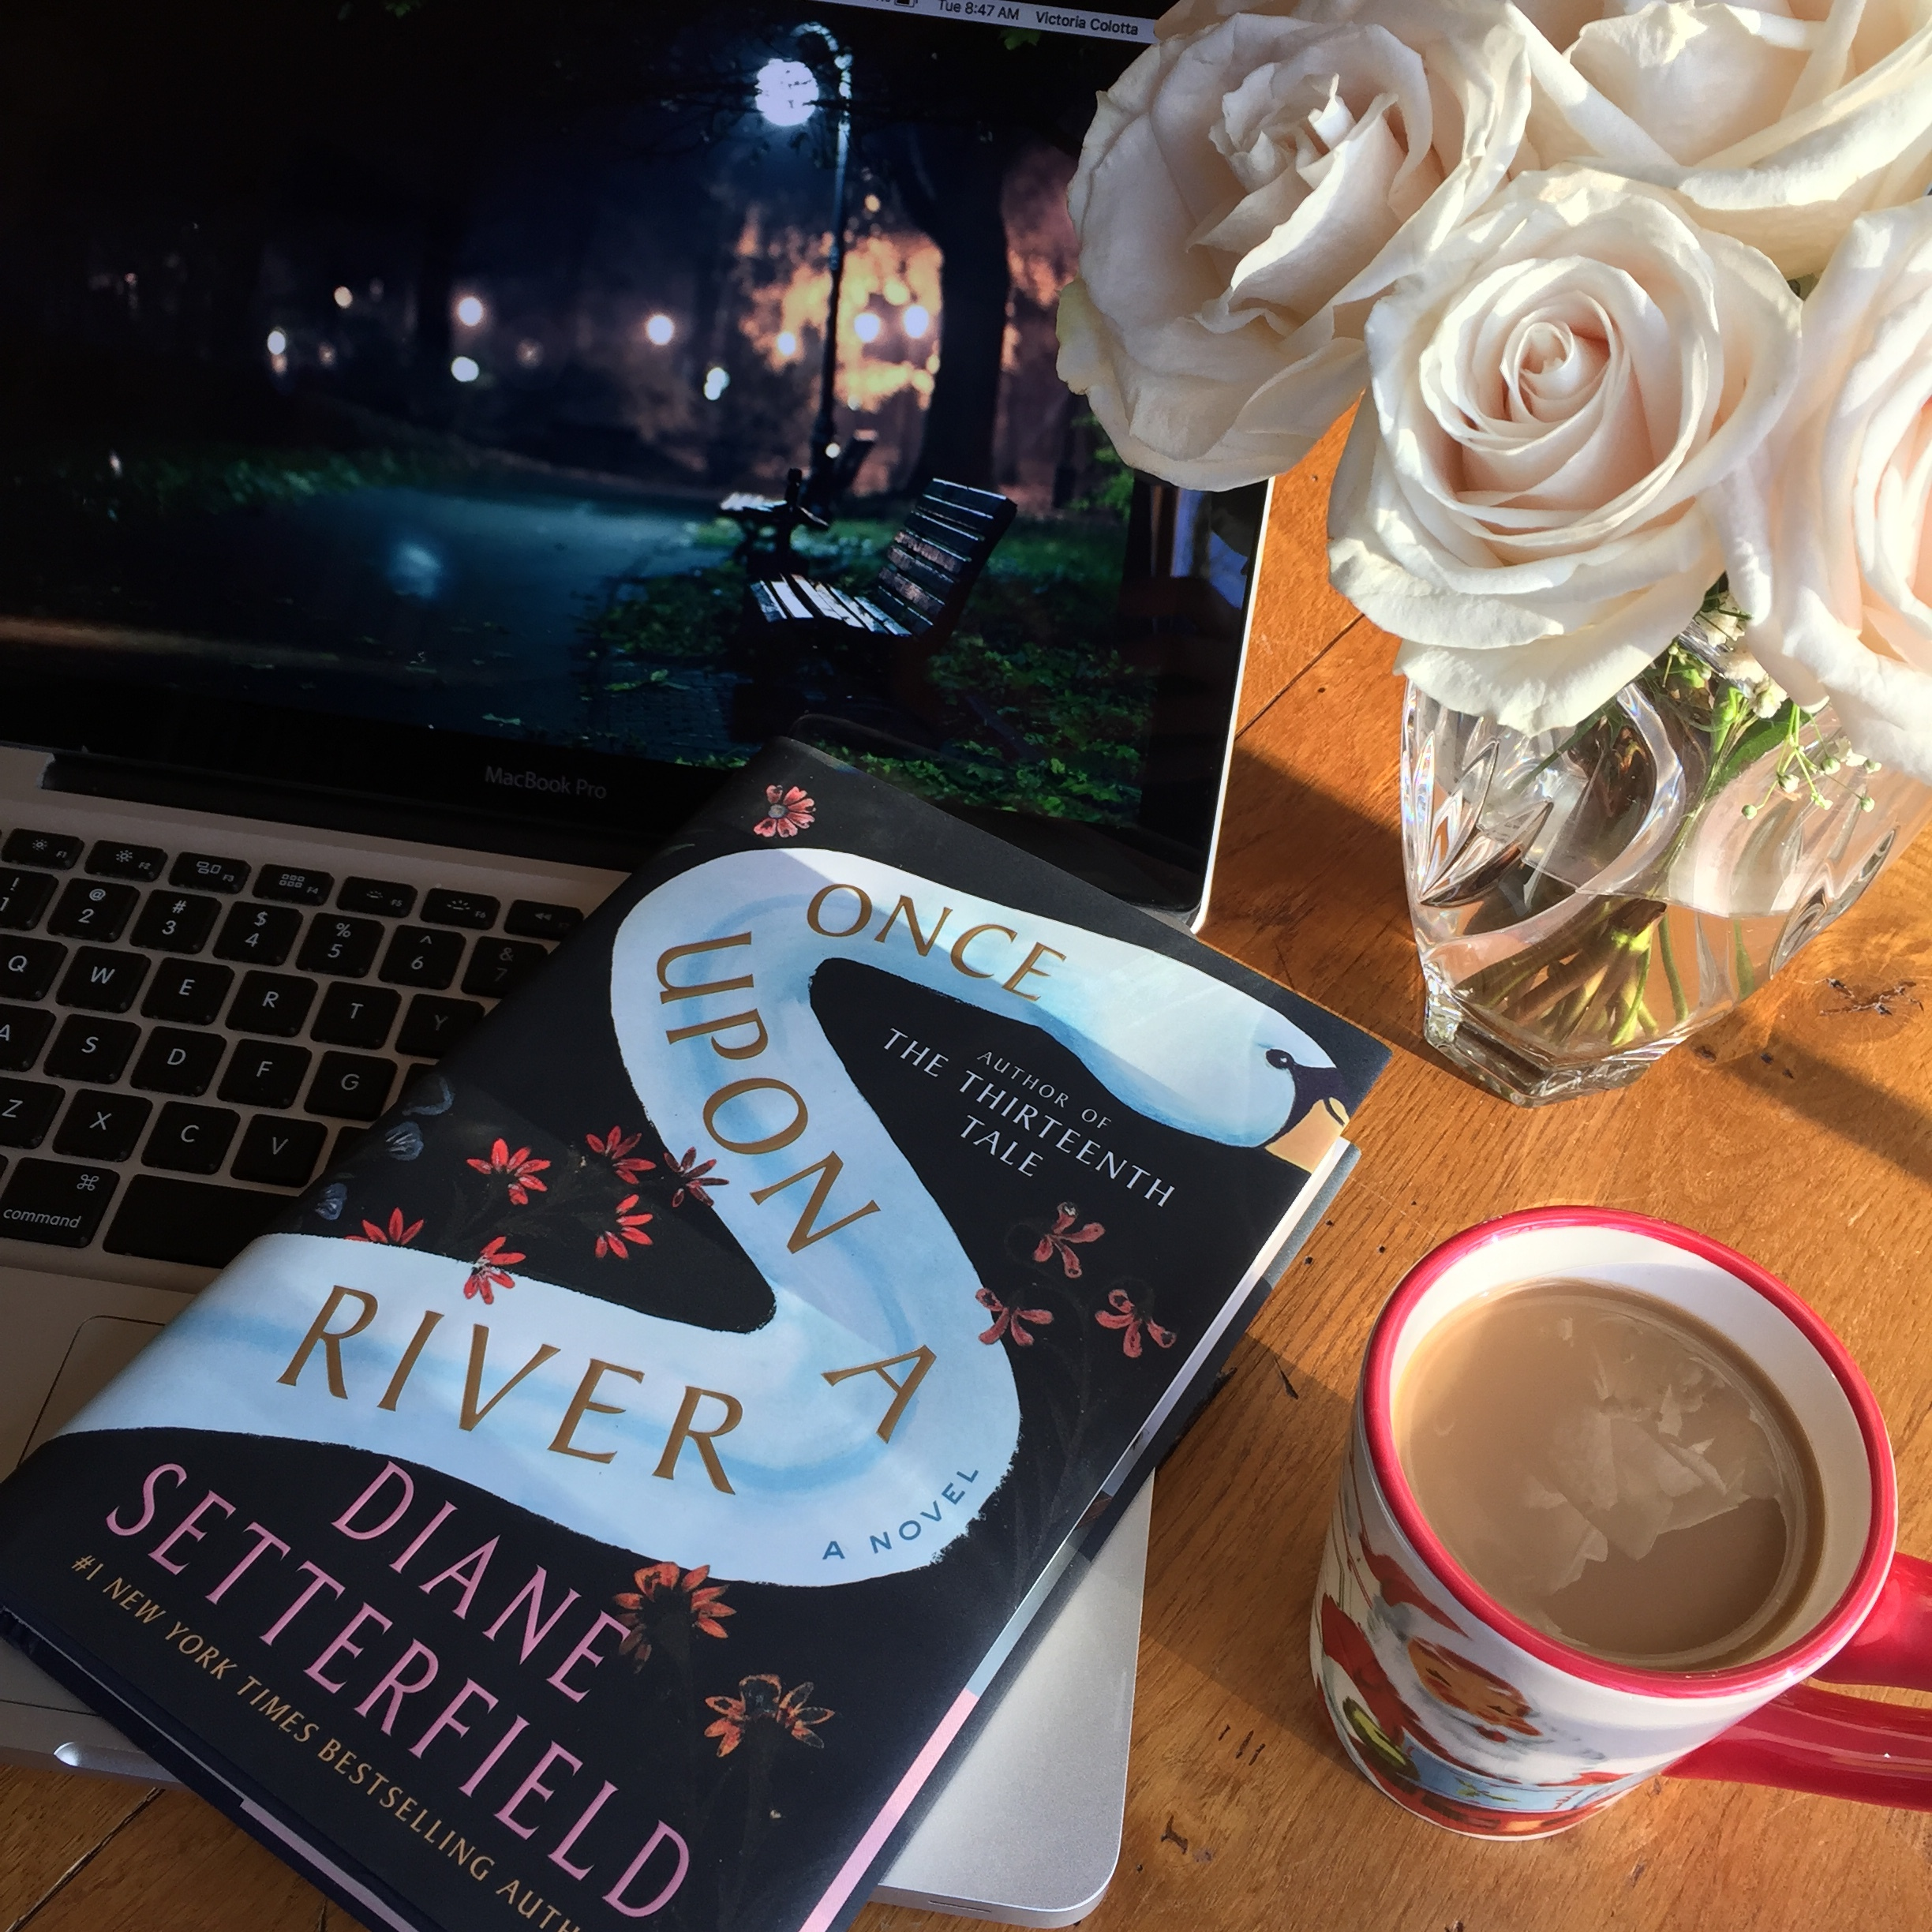 Book Review for ONCE UPON A RIVER by Diane Setterfield